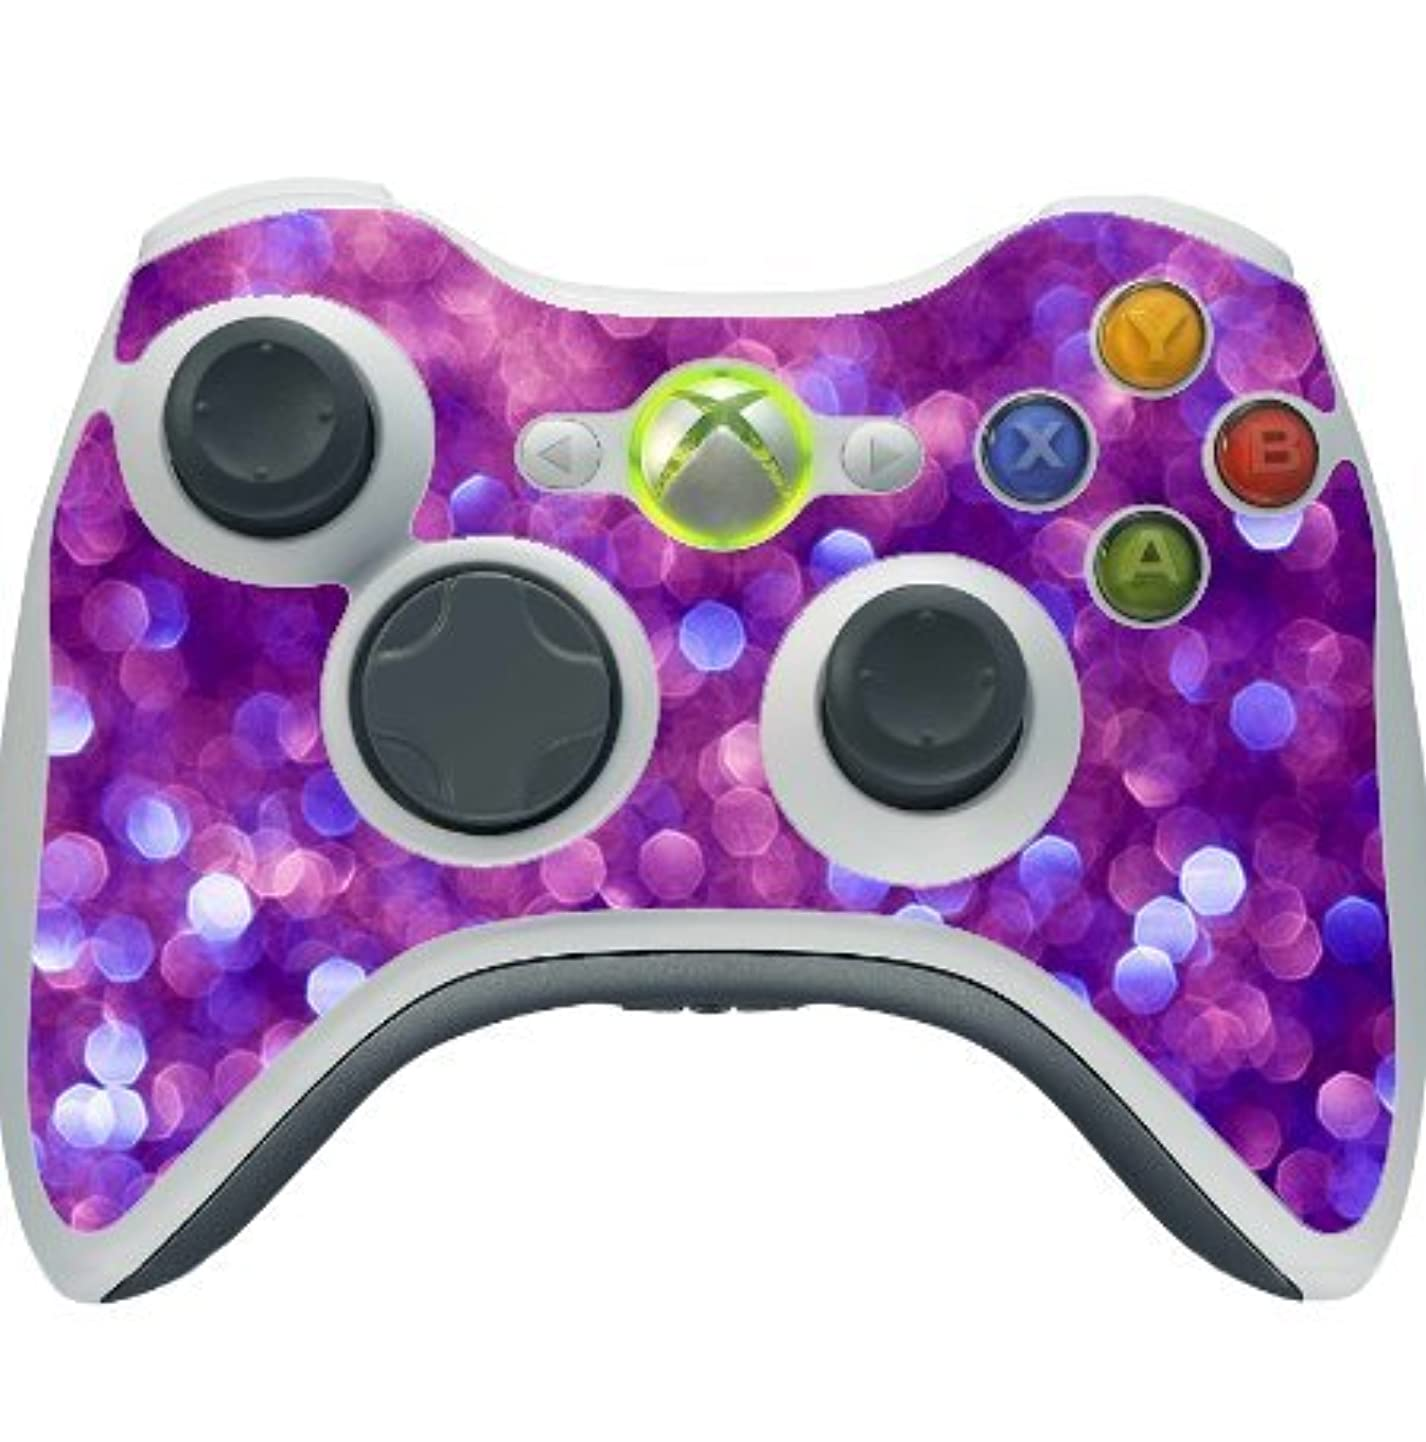 Shimmering Purple Xbox 360 Wireless Controller Vinyl Decal Sticker Skin nzqogtlgade6